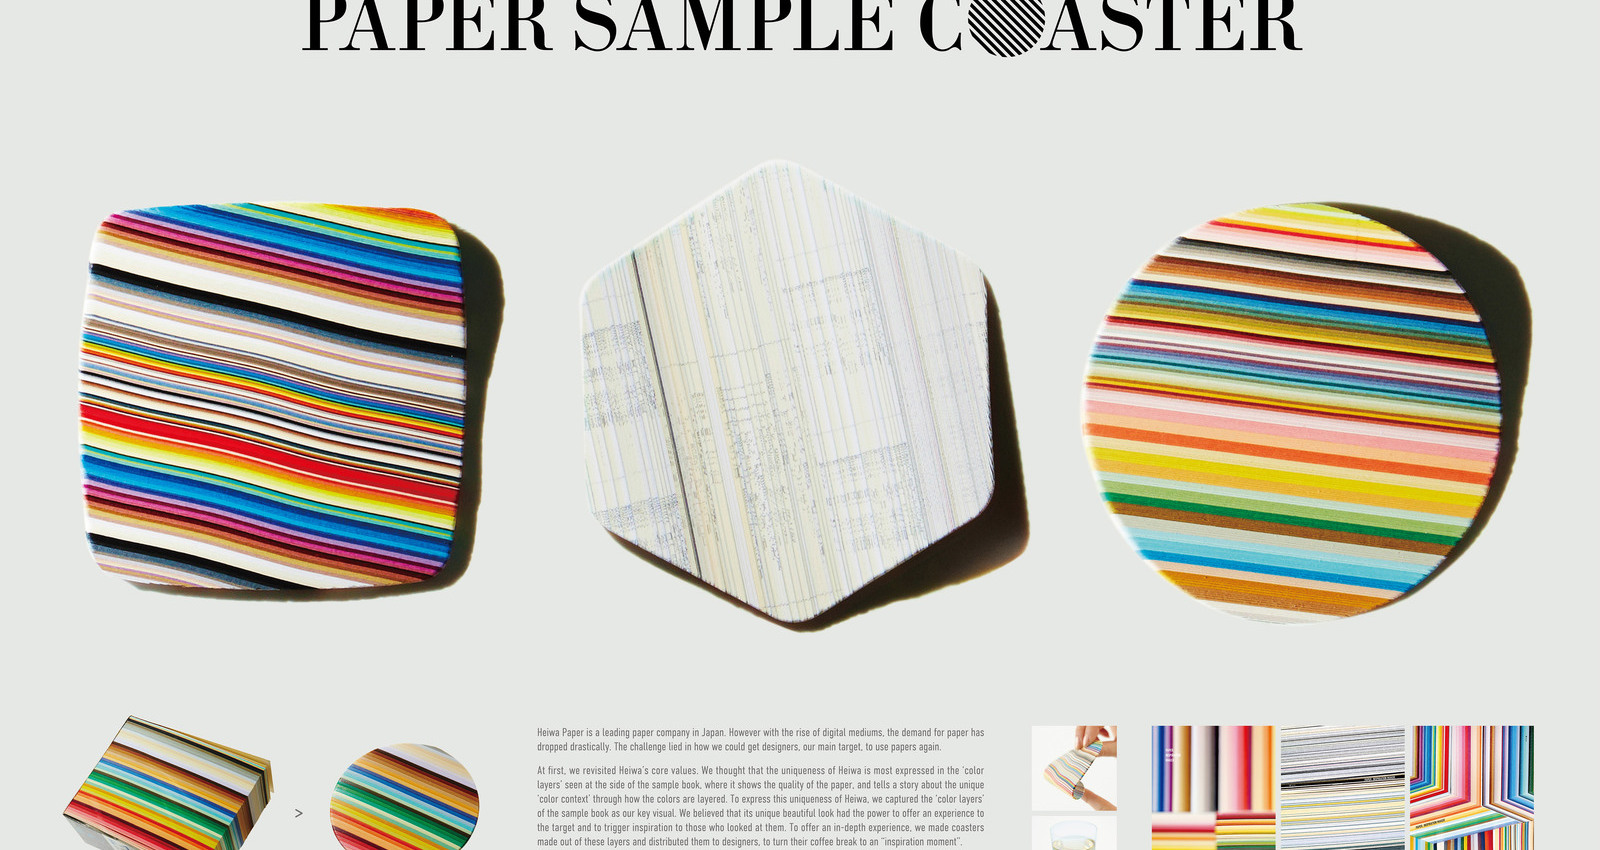 Paper Sample Coaster